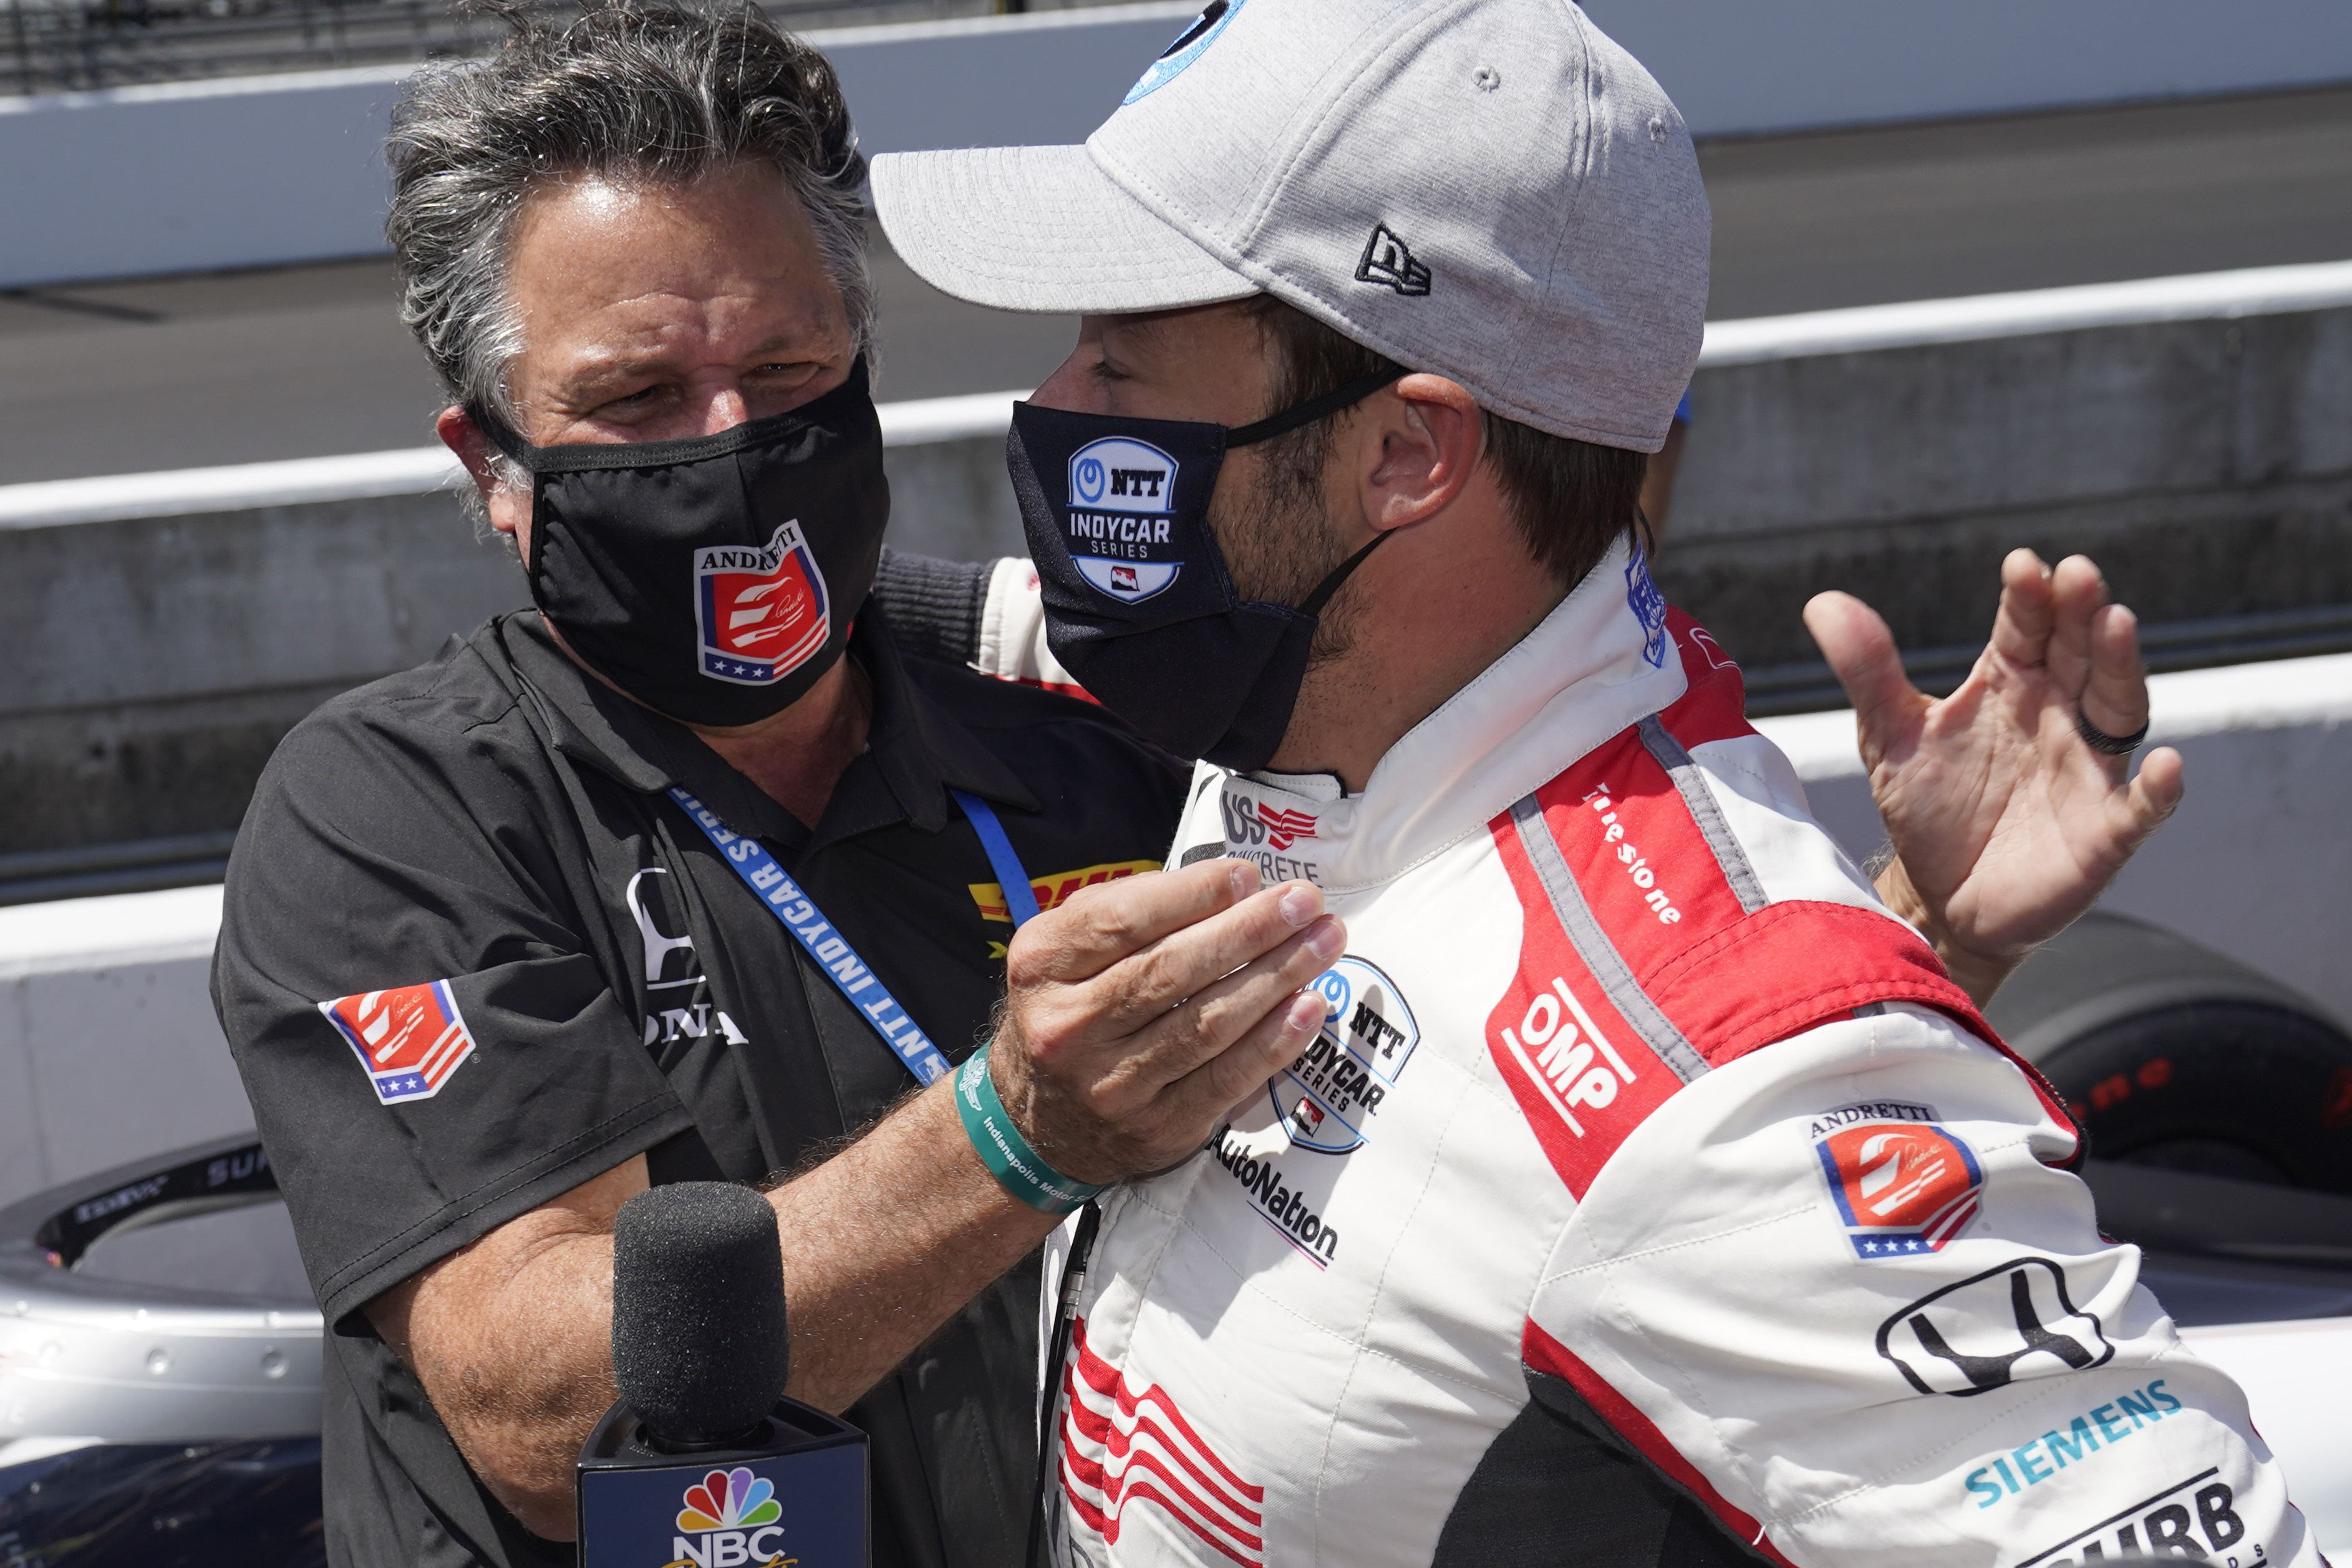 Peluang Marco Andretti Indy 500